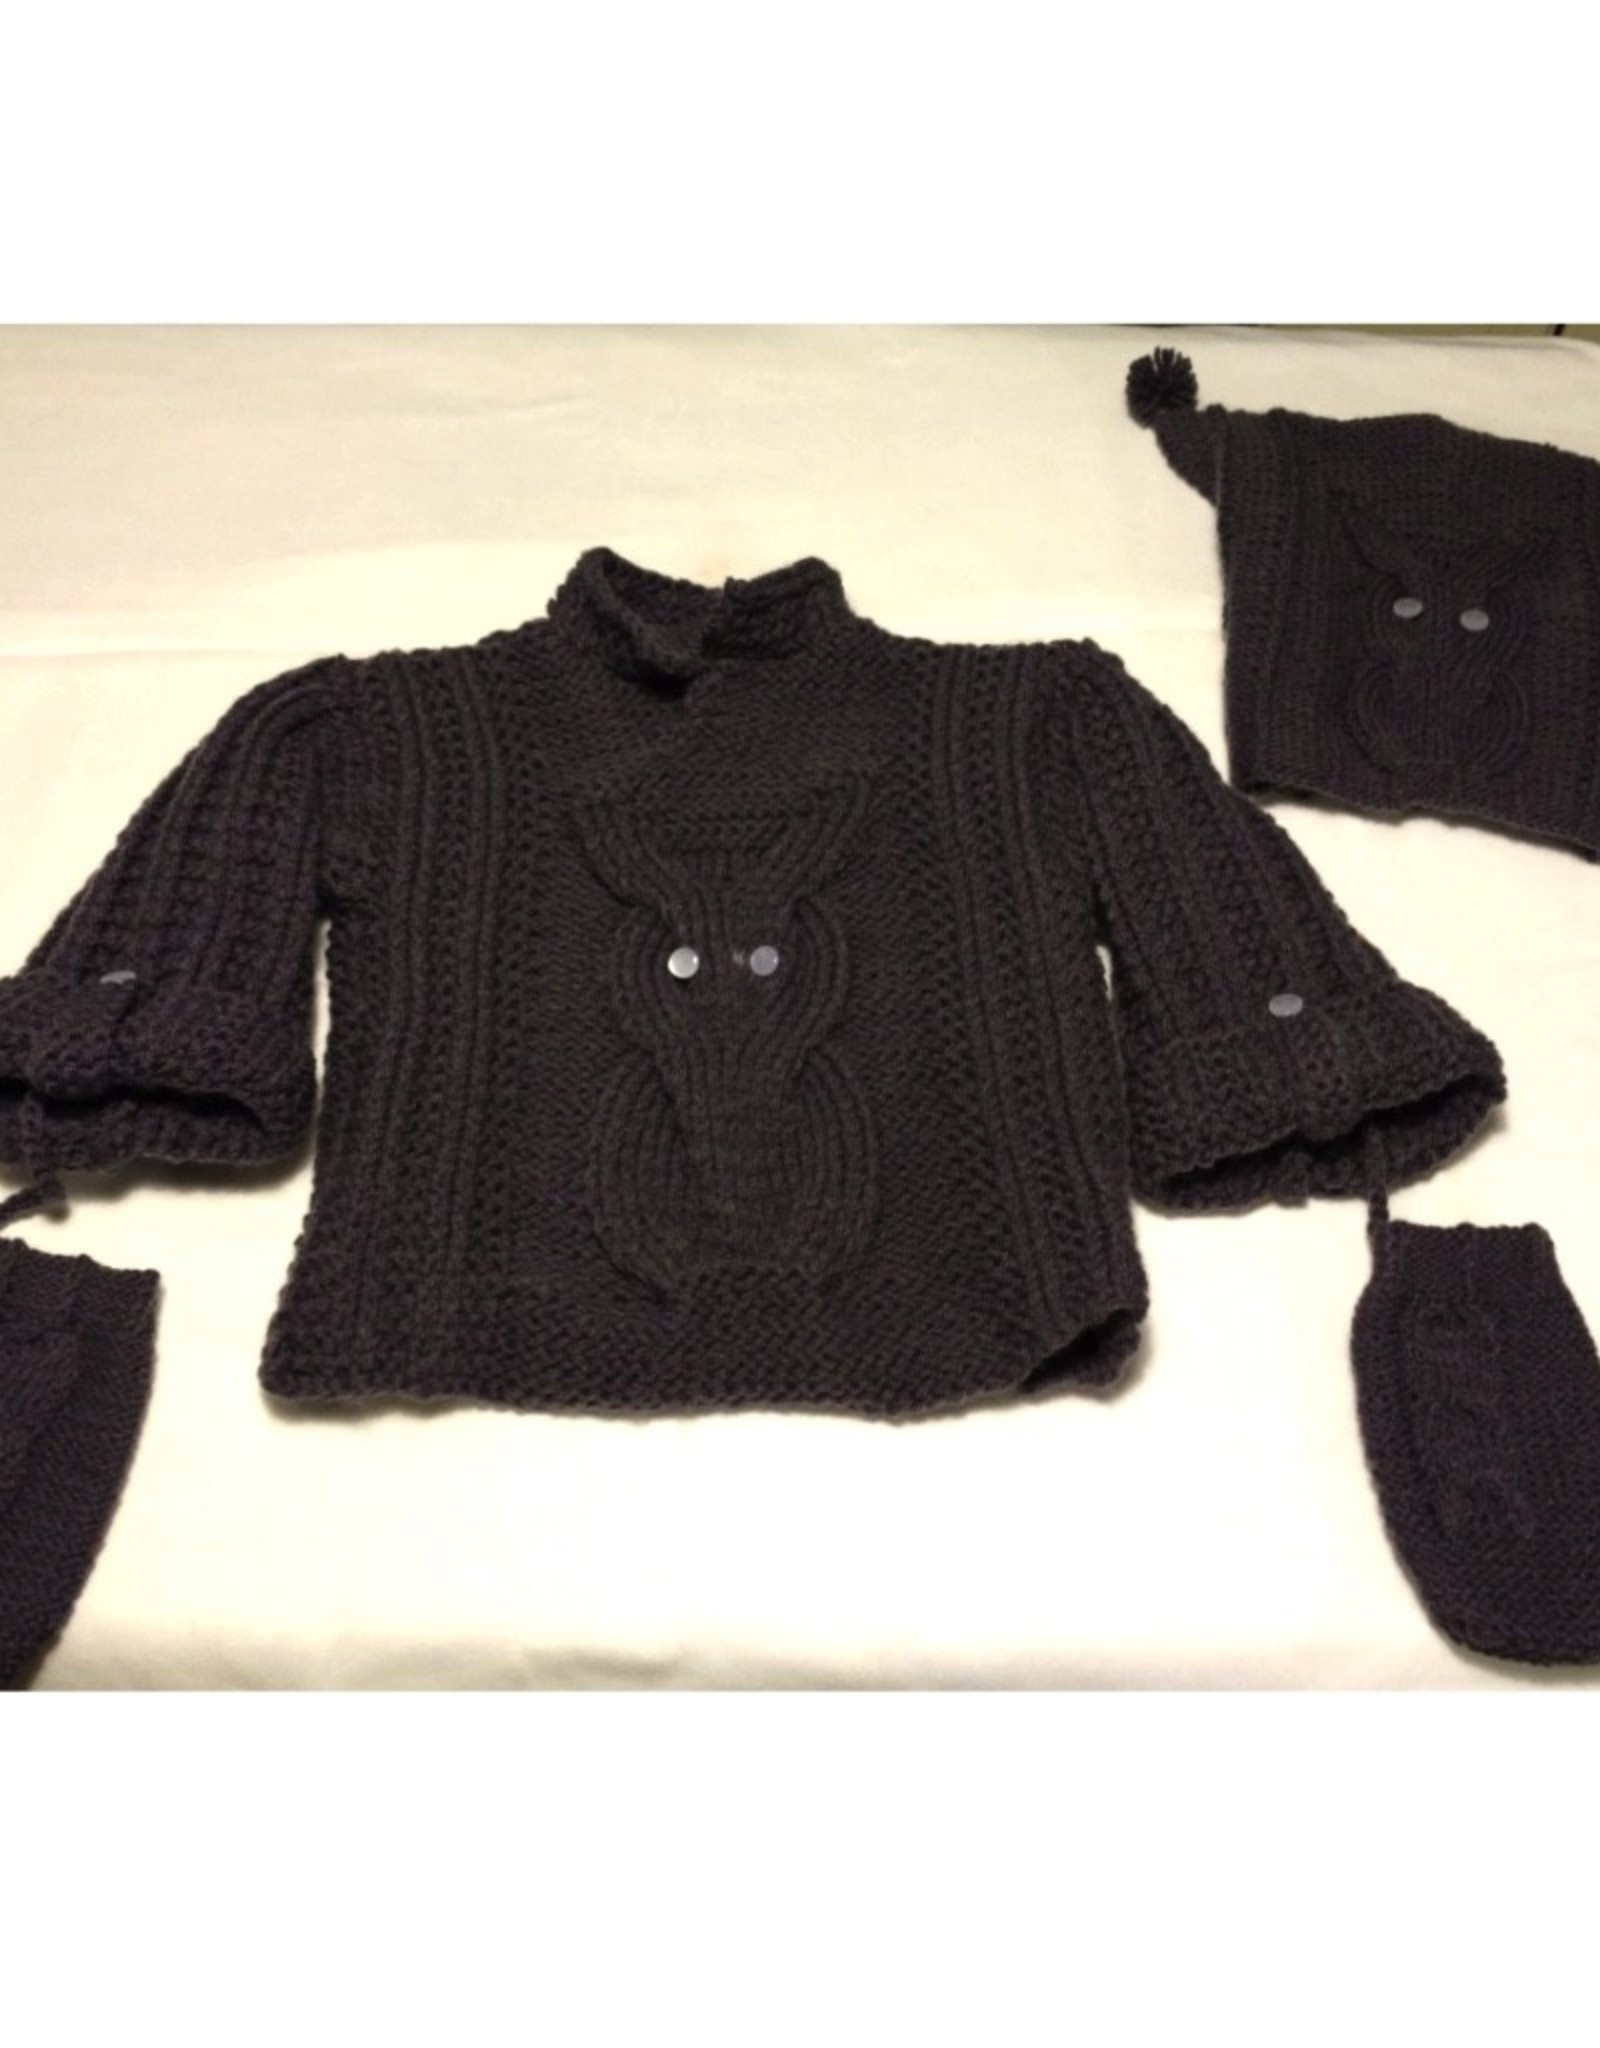 Susie Q Owl Sweater, Hat and Mittens